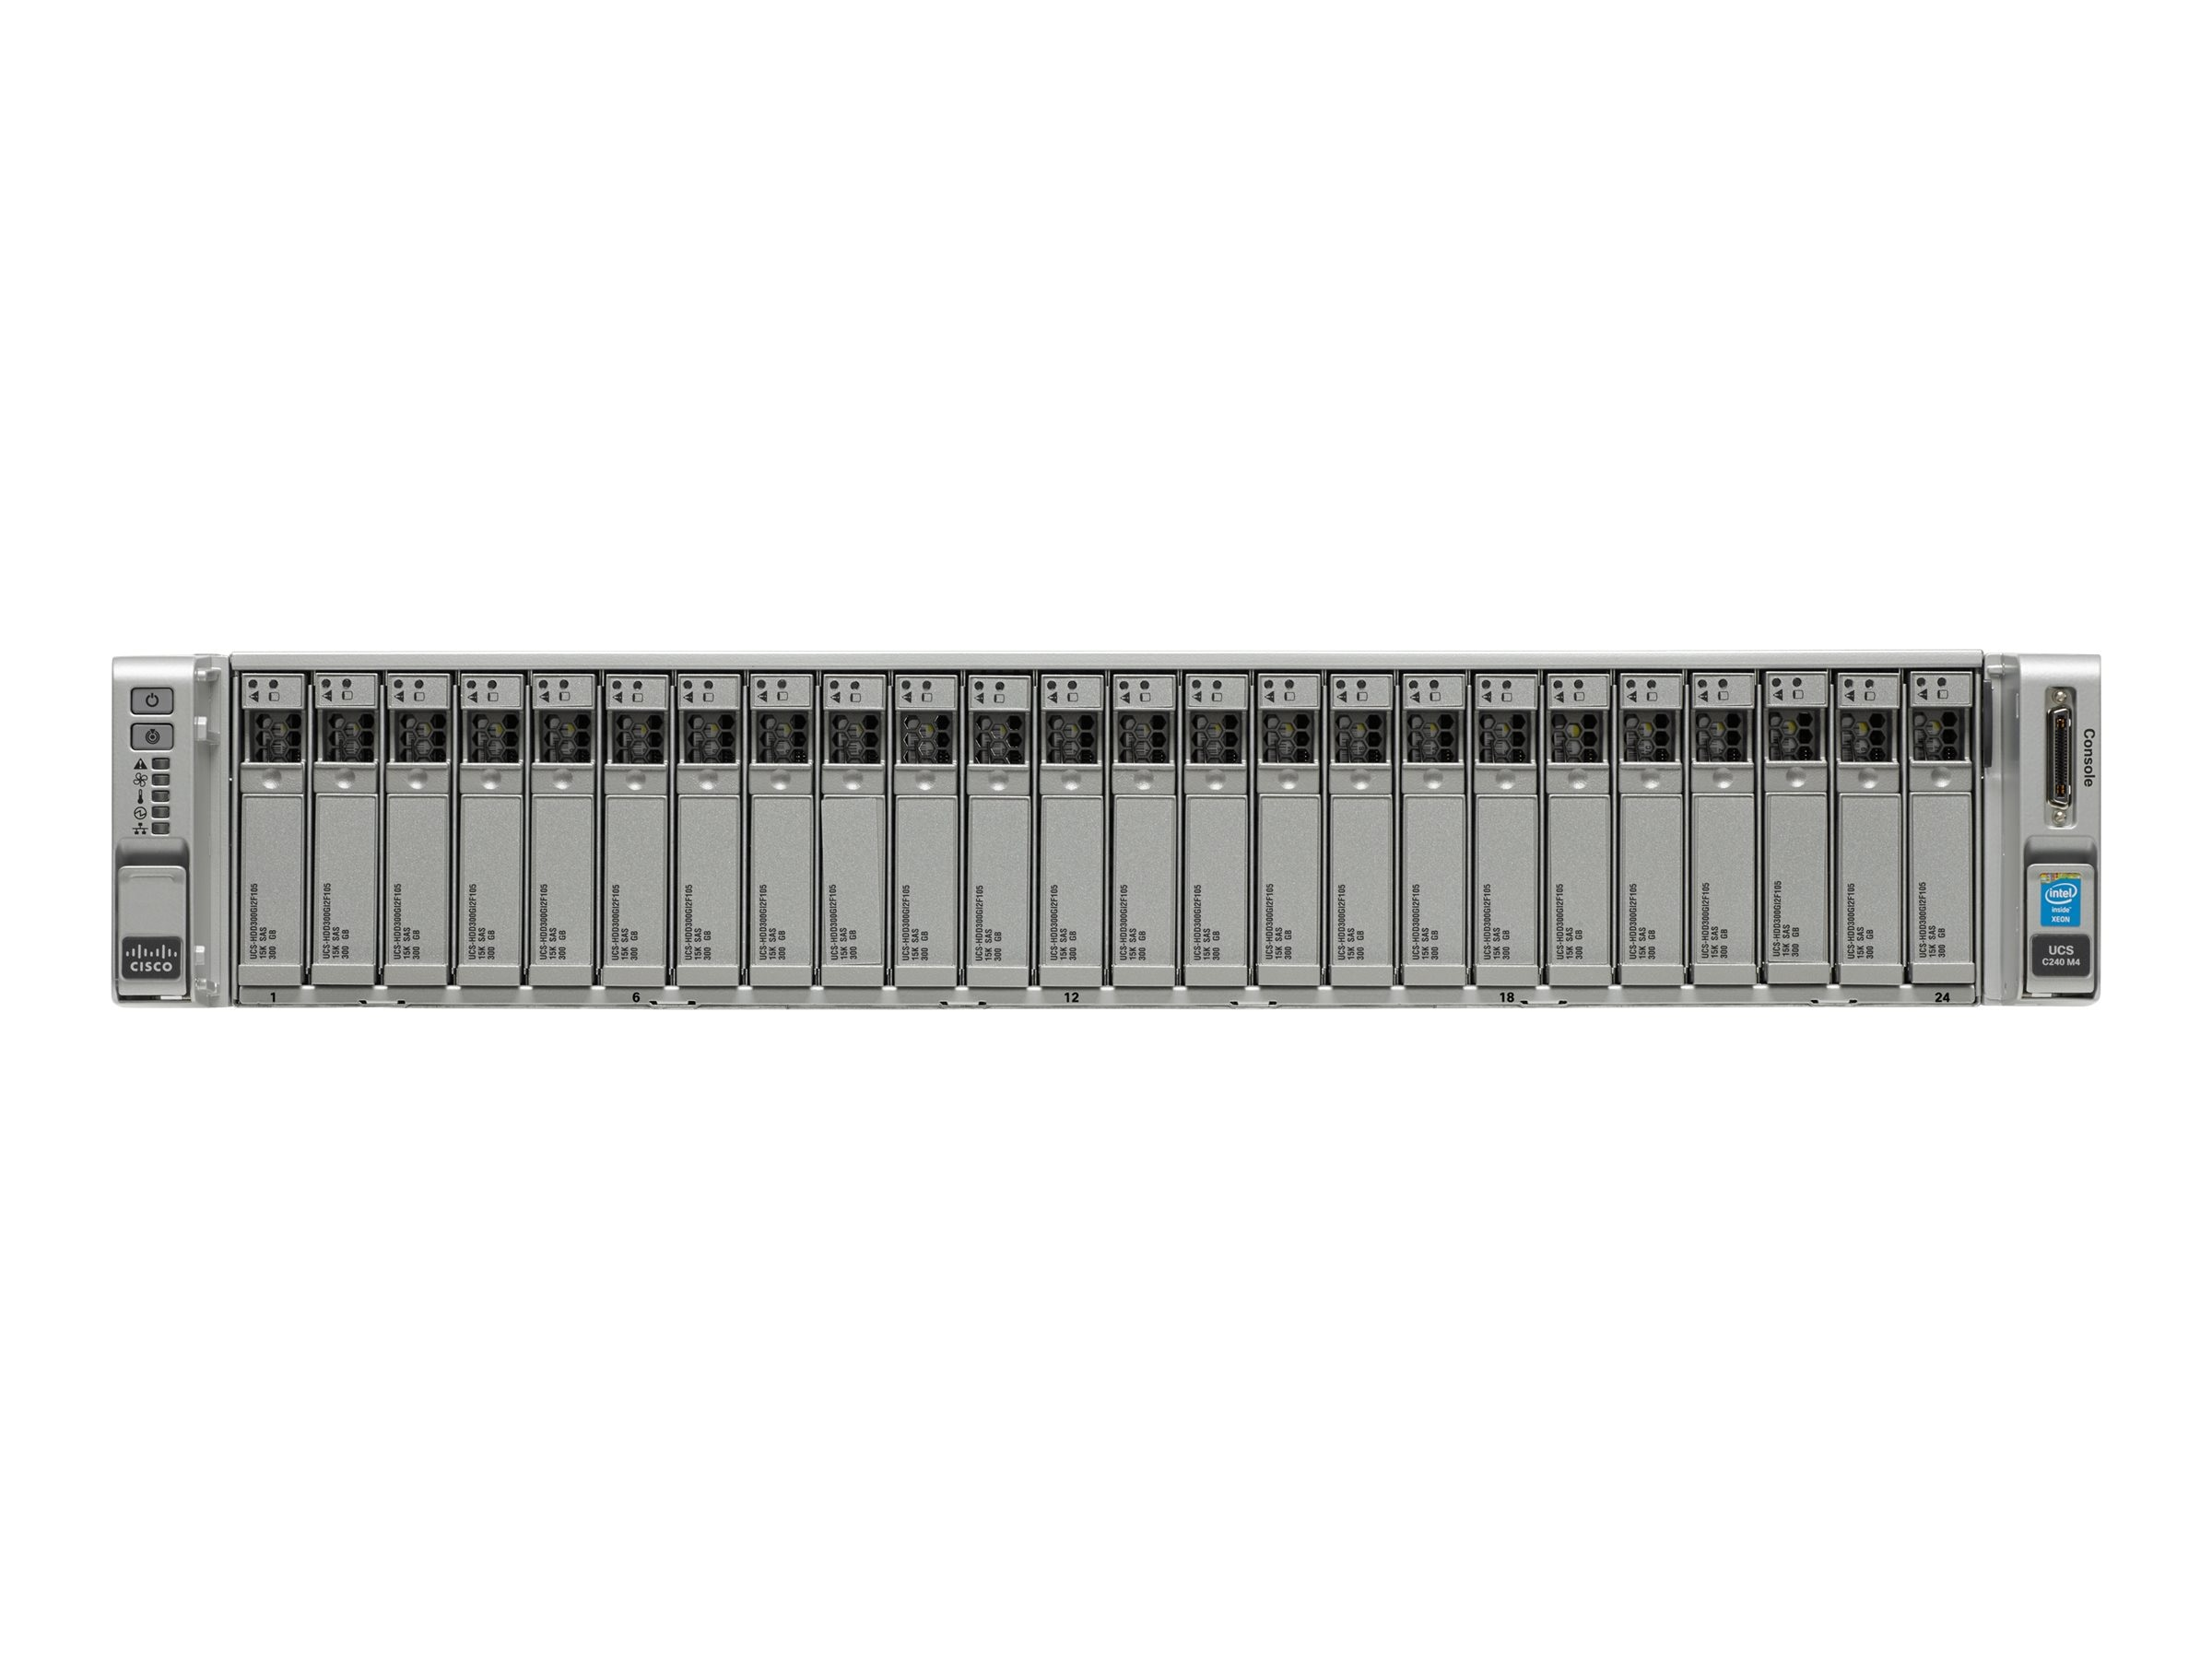 Cisco SmartPlay Select C240 M4 Standard 2 (2x)E5-2620 v3 128GB VIC1227 2x1400W, UCS-SPL-C240M4-S2